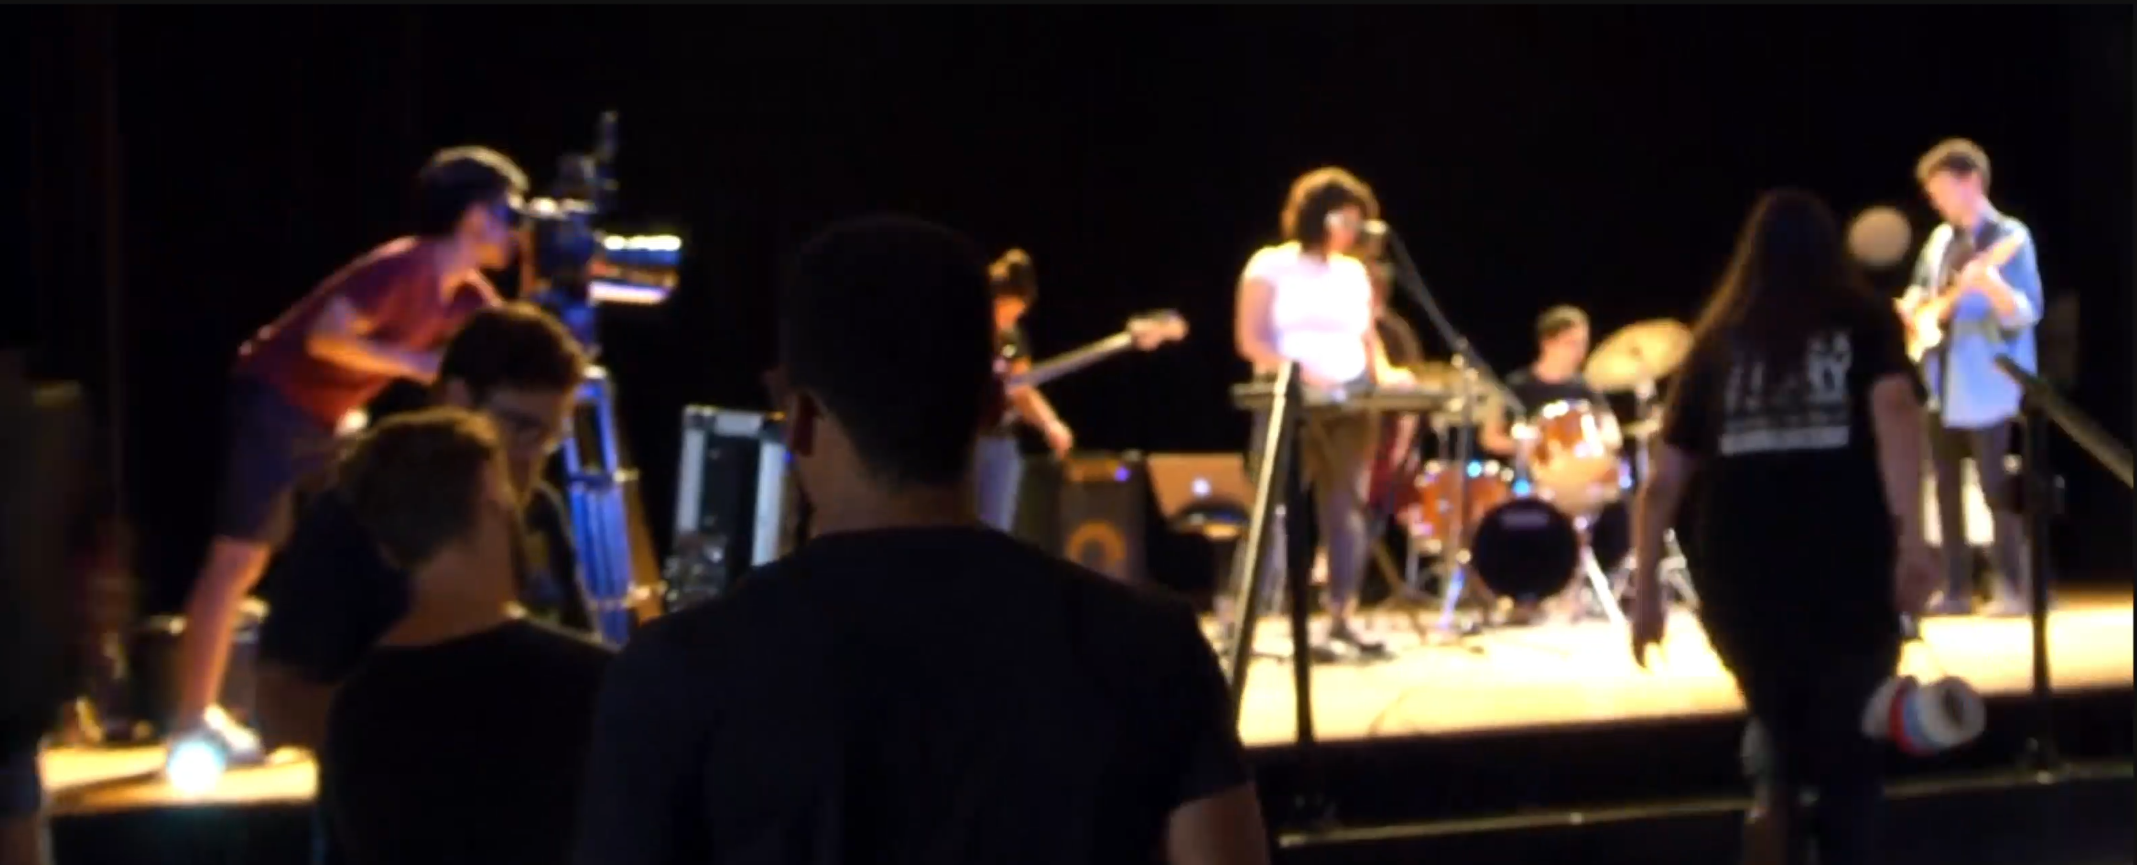 Blurred photo of a band performing on stage while being filmed.